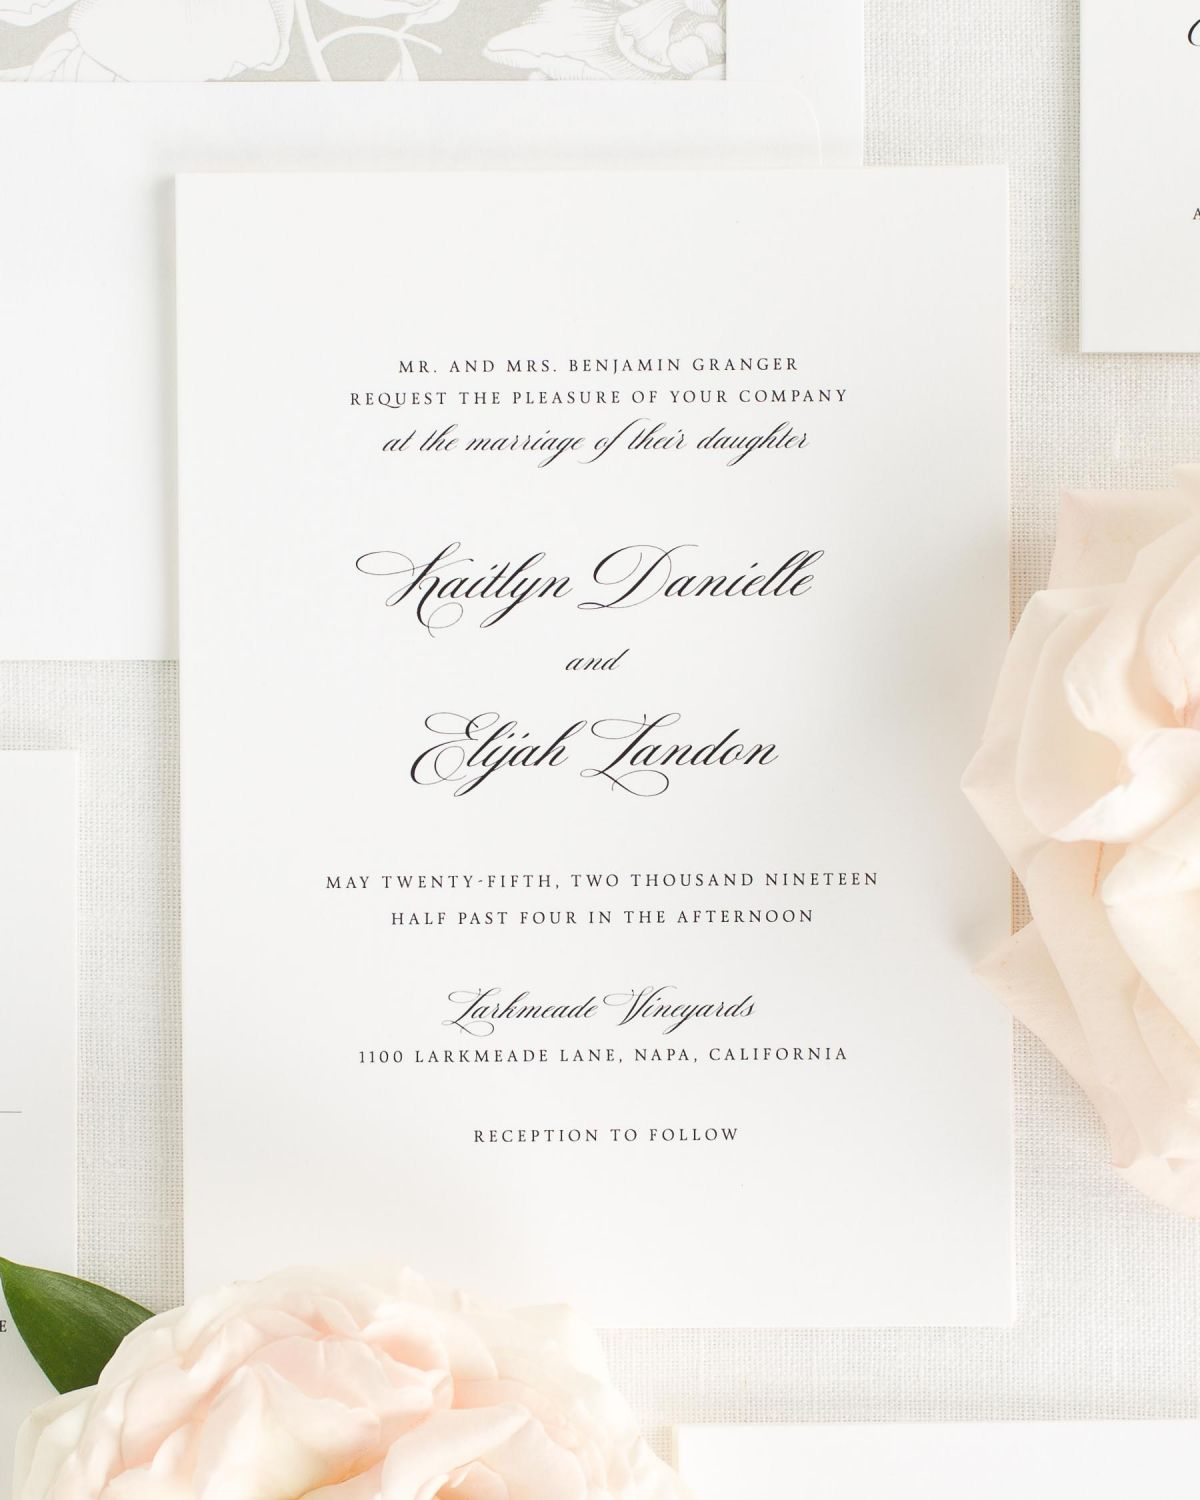 Wedding Invitations with Small Script Names